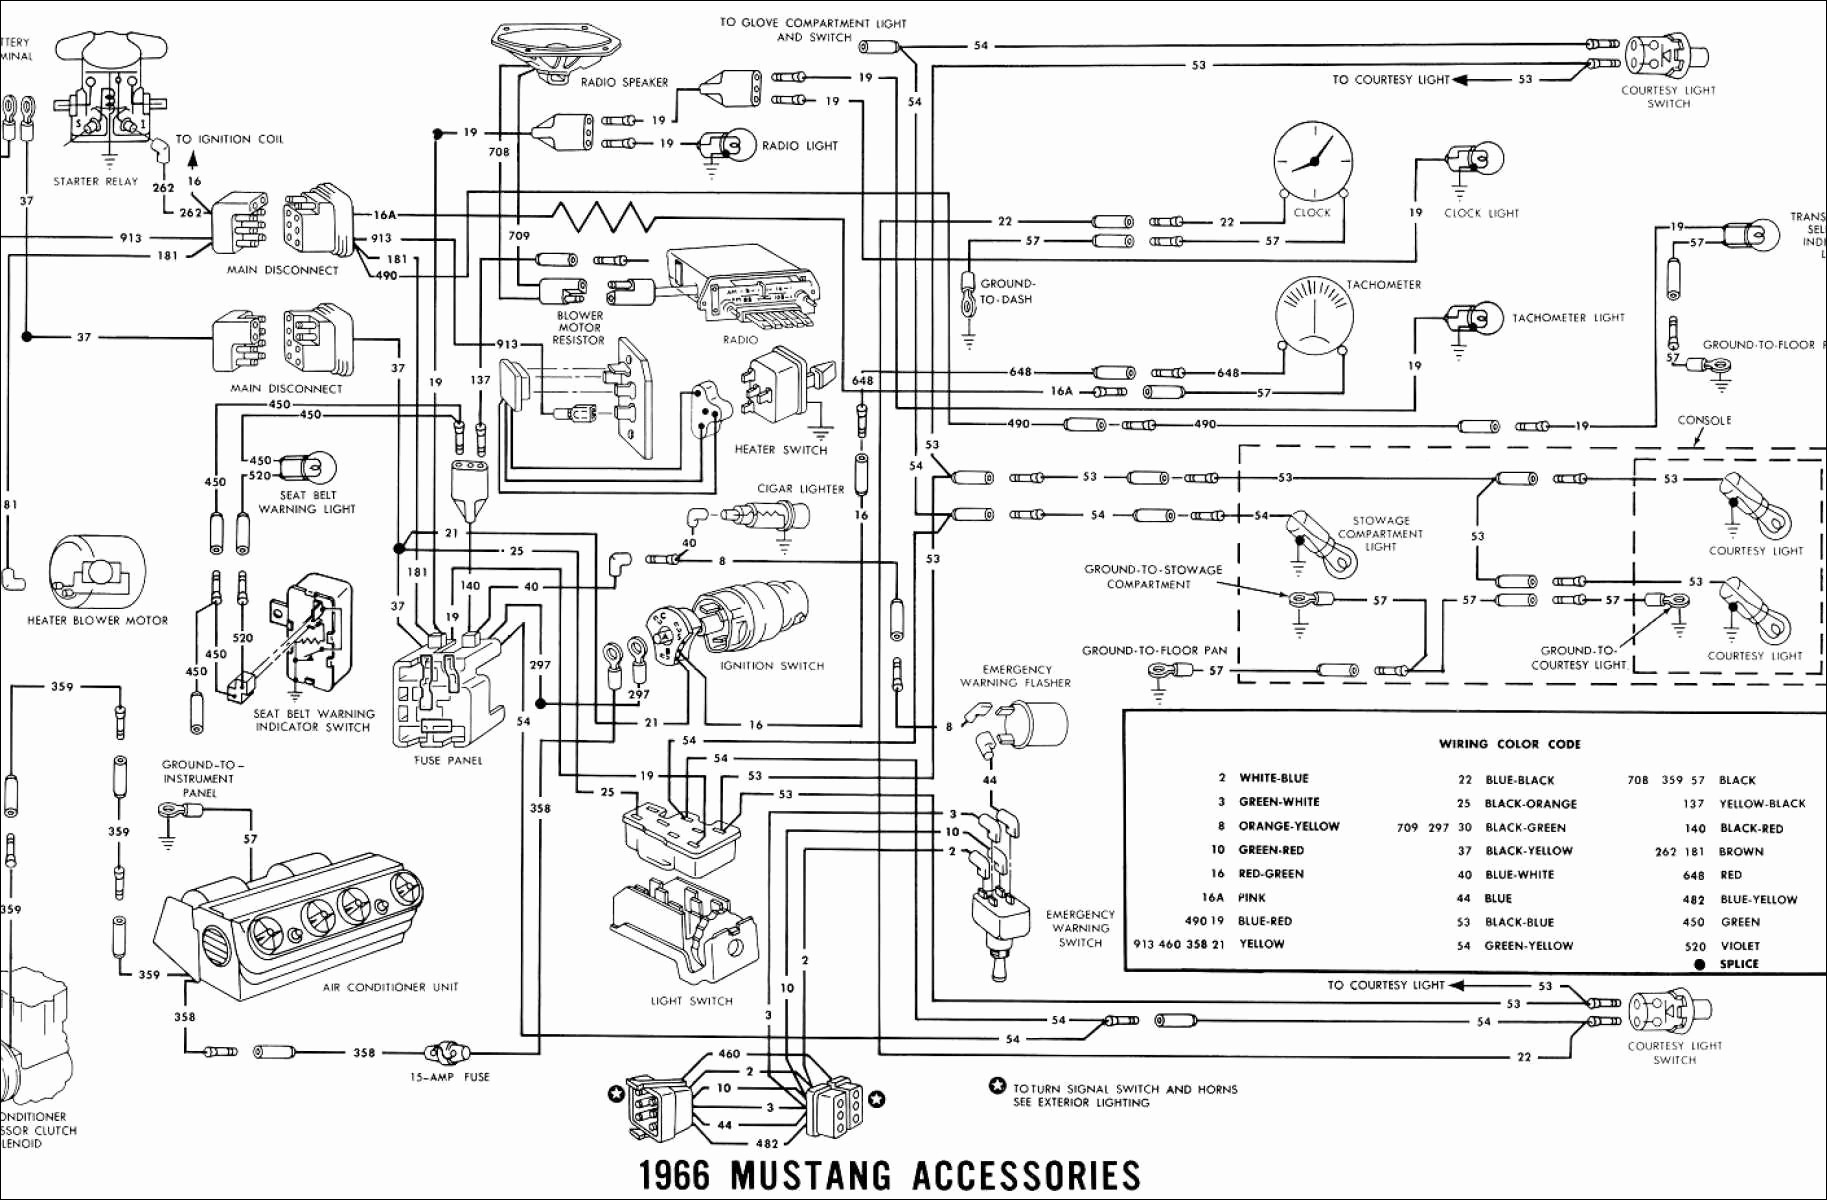 Meyer Snow Plow Wiring Diagram Myers Qp 30 Wiring Diagram Wiring Of Meyer Snow Plow Wiring Diagram